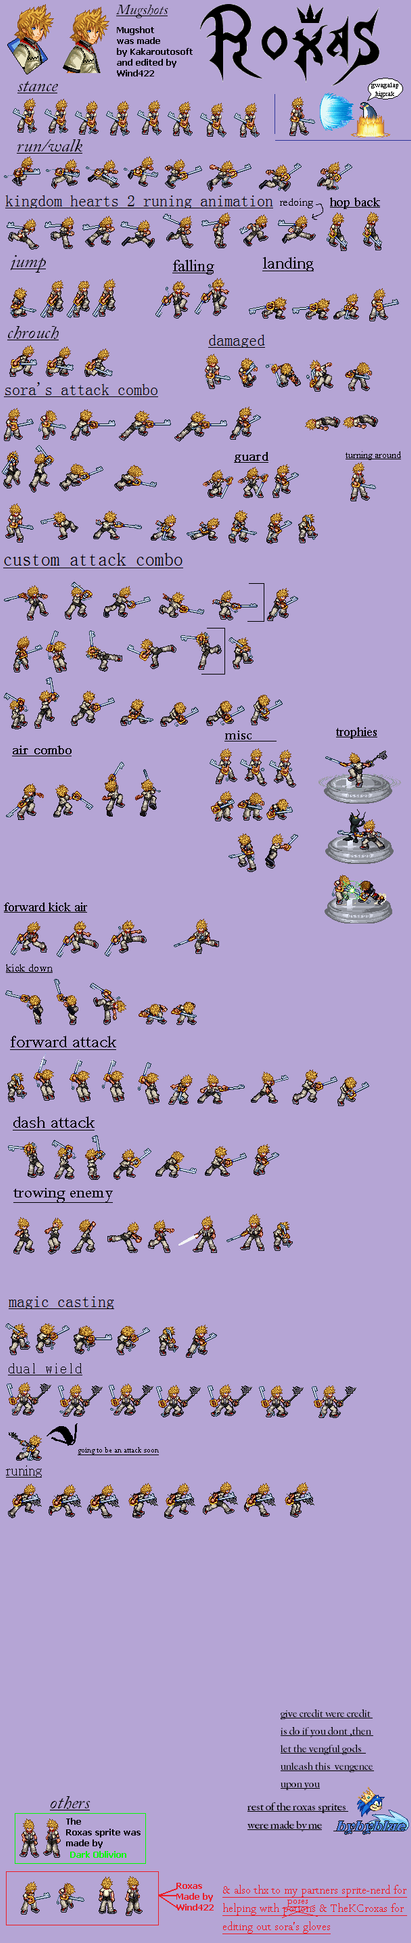 roxas battle sprites by bybyblue